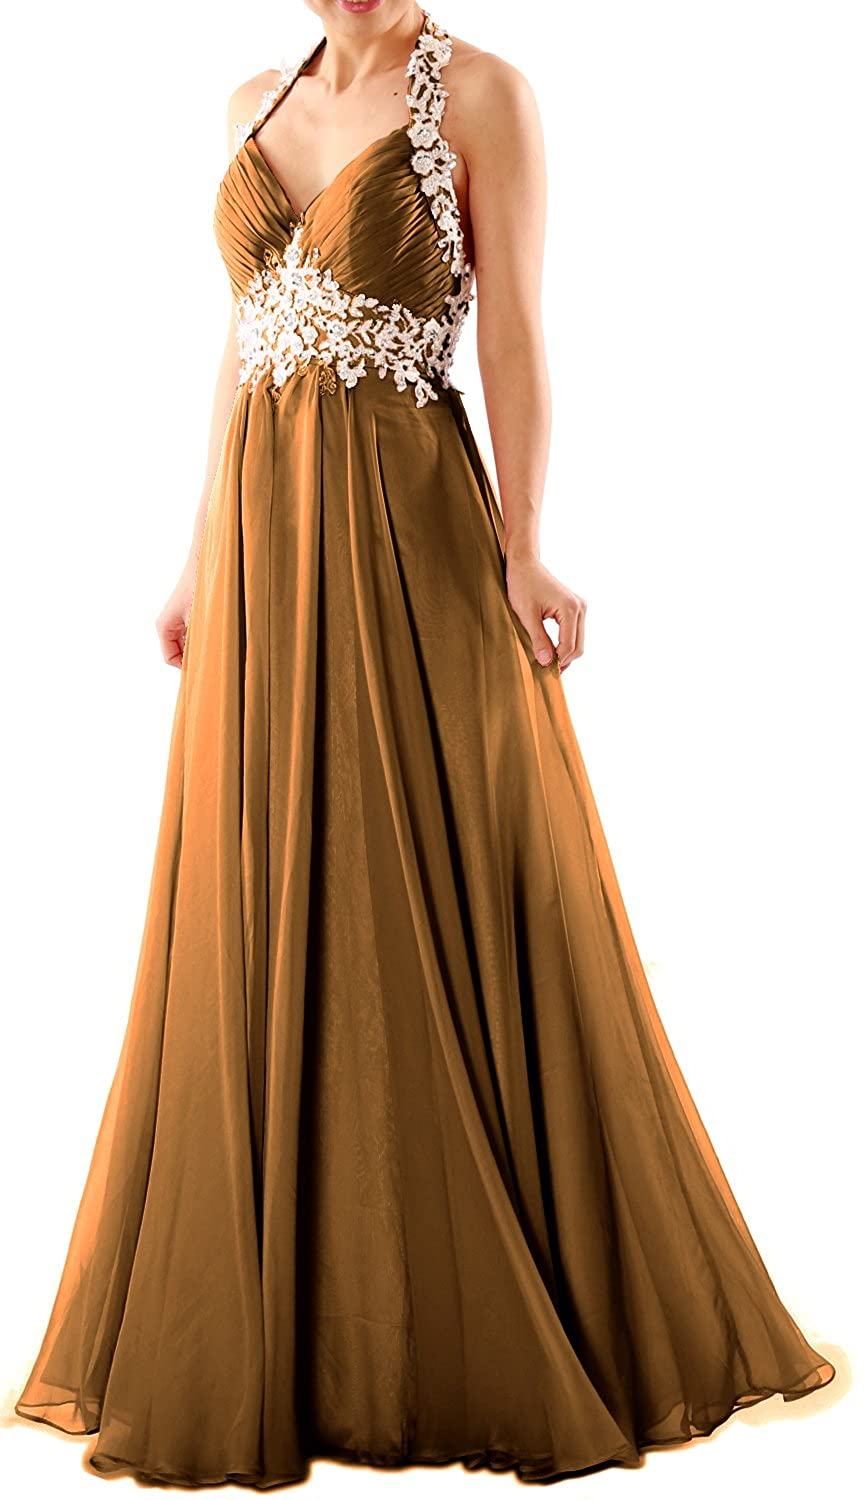 MACloth Women Halter V Neck Lace Chiffon Long Prom Party Dress Fromal Ball Gown